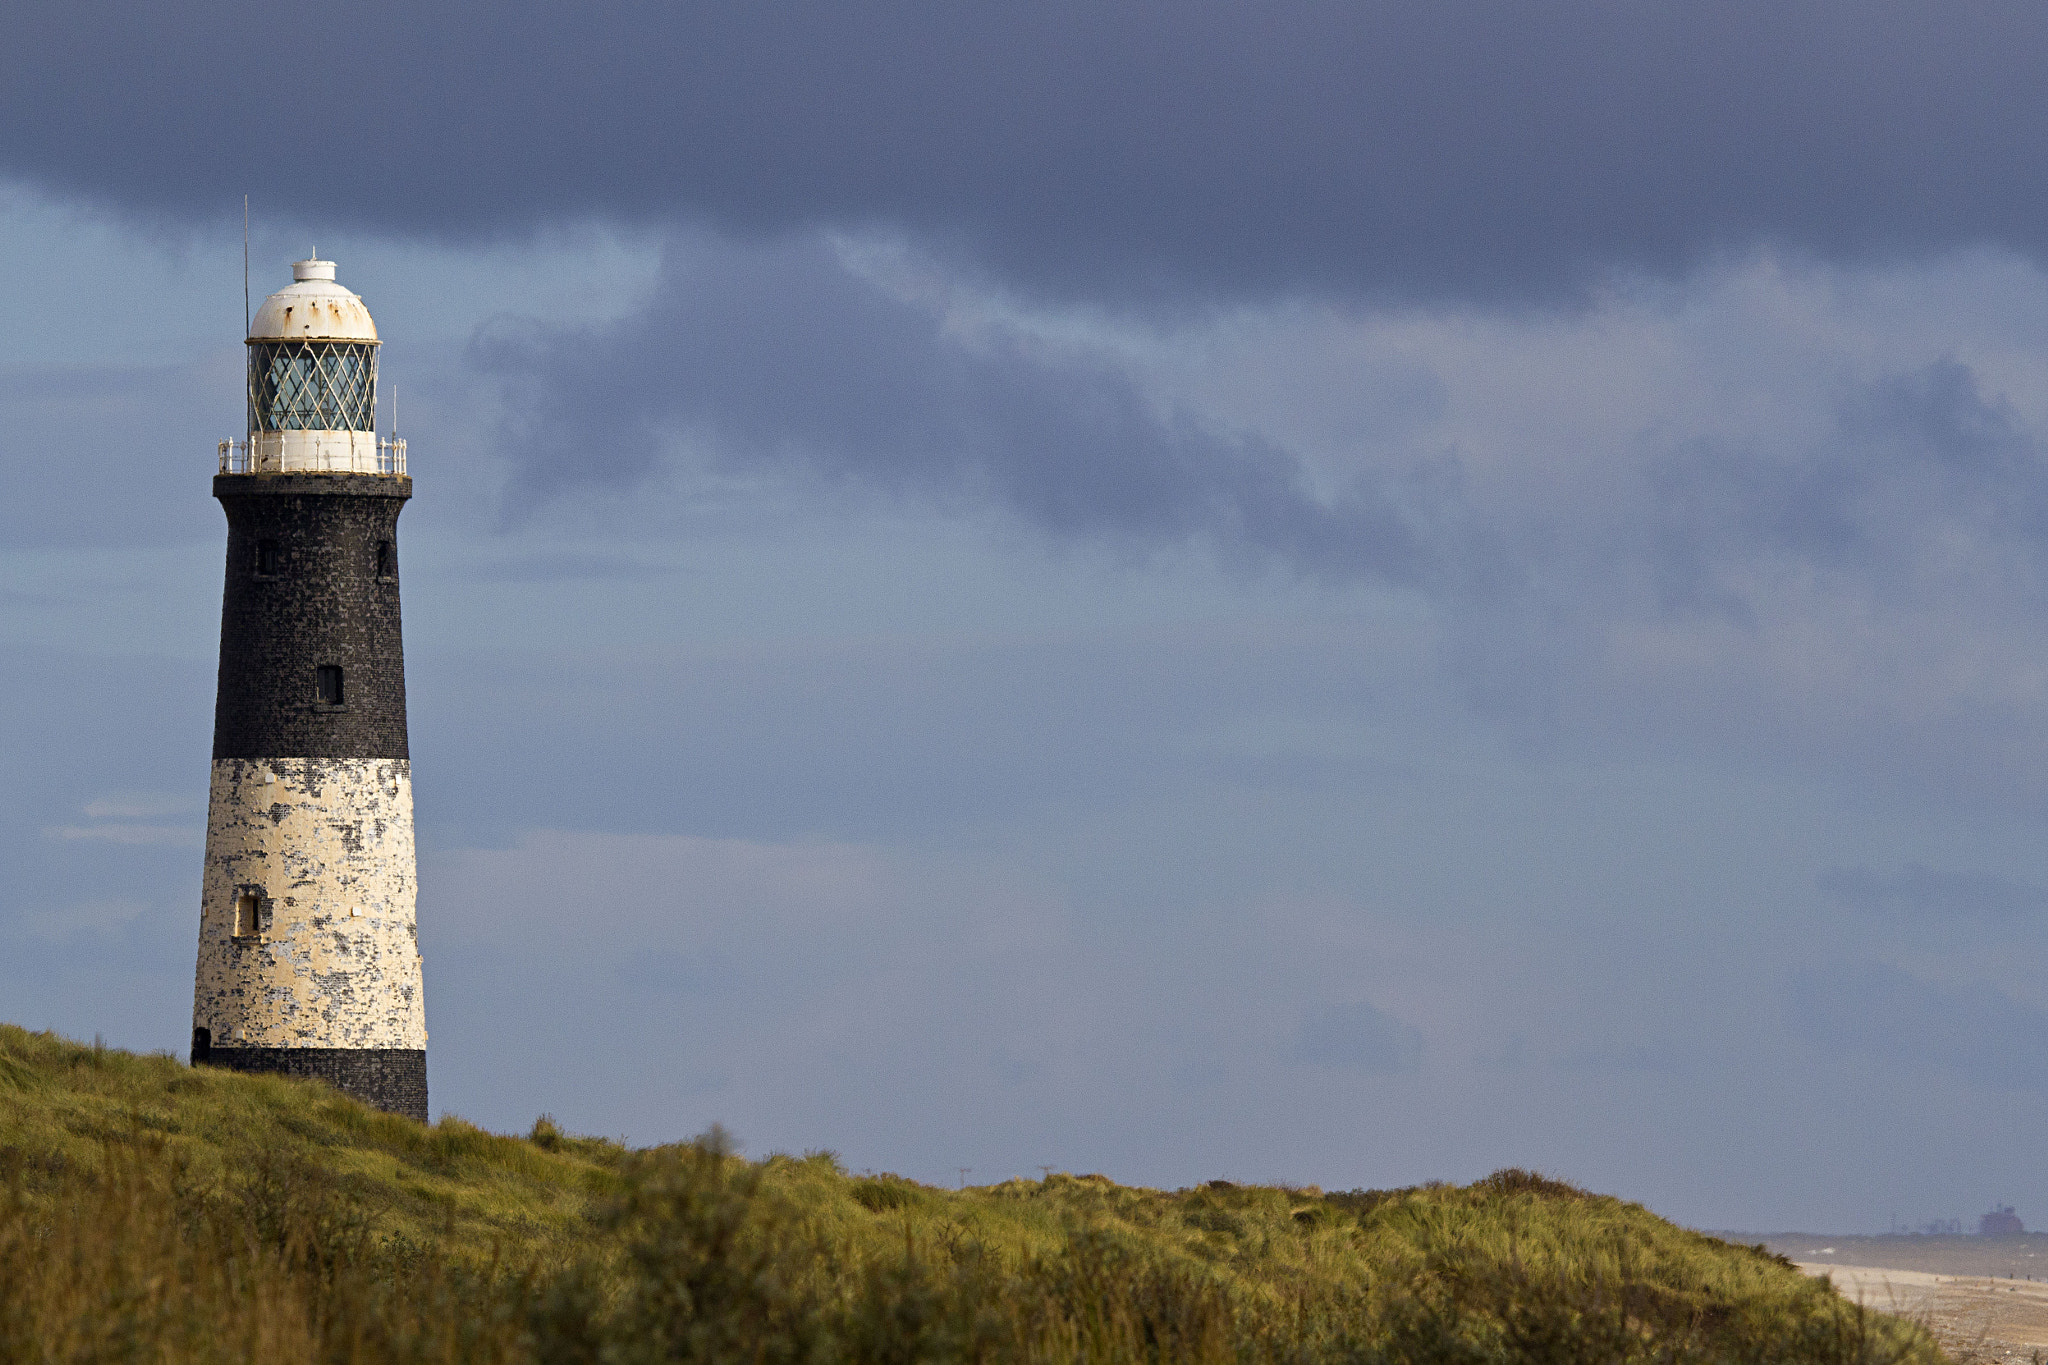 Photograph Lighthouse at Spurn by James Butler on 500px